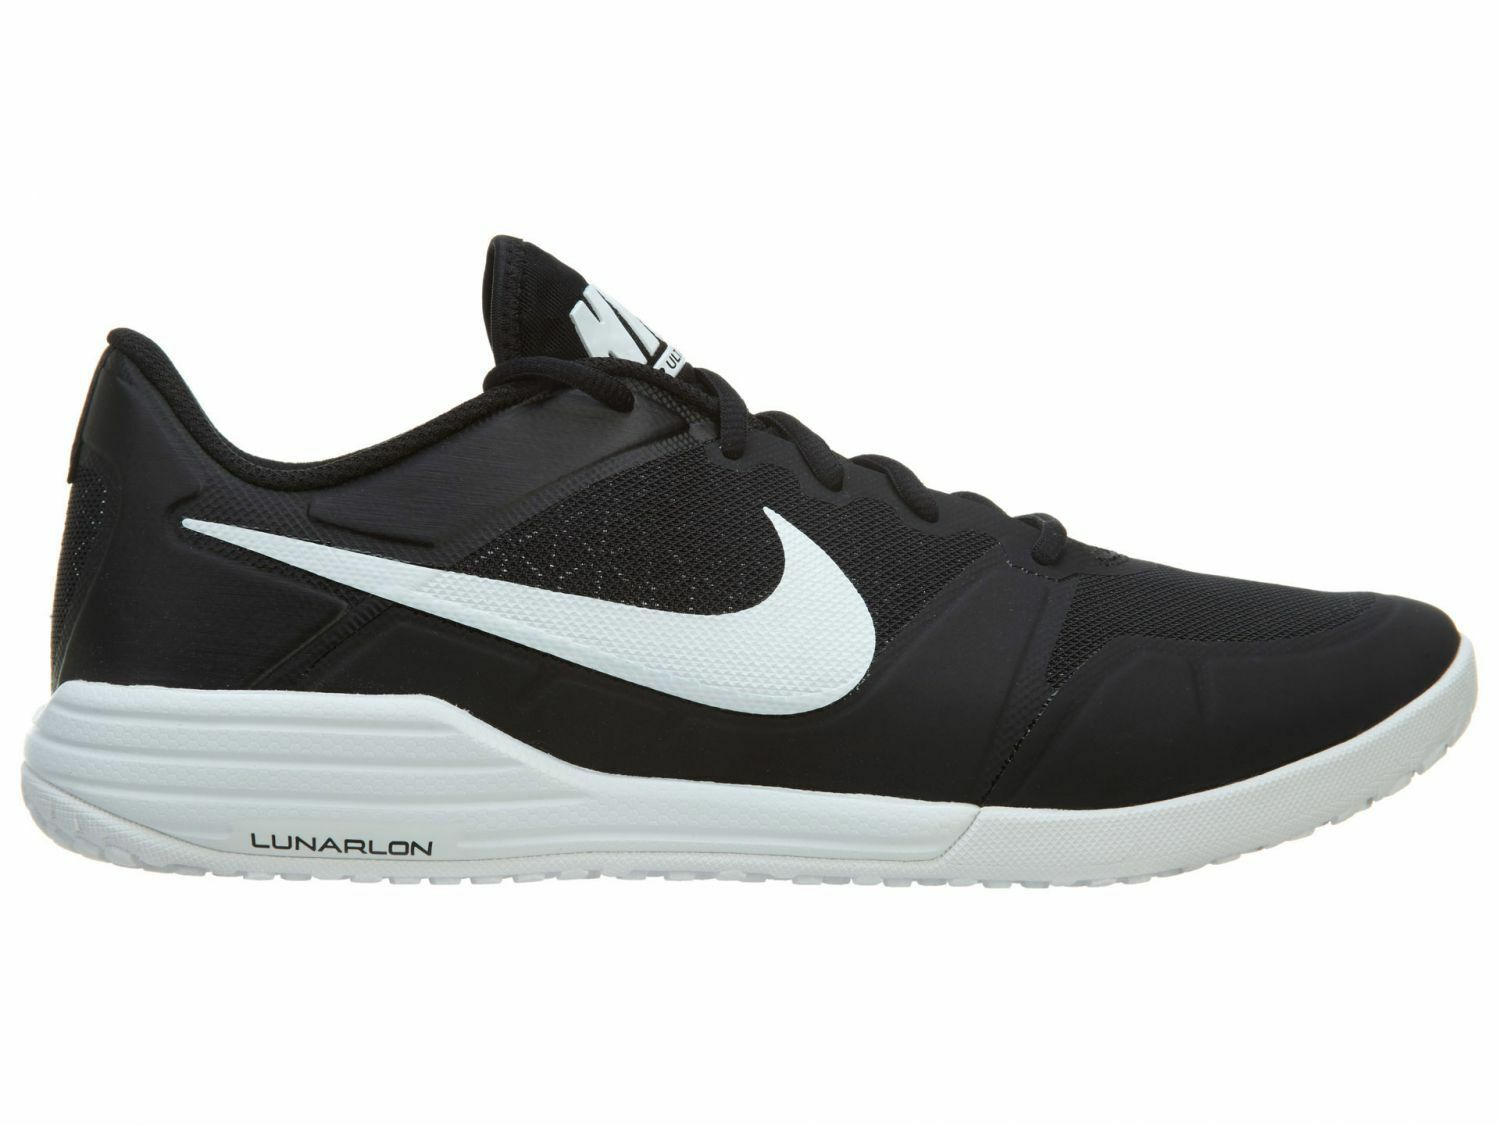 Nike Lunar Ultimate Tr Black Black Black White Men's Running Trainers shoes UK 9_9.5 f0dacc